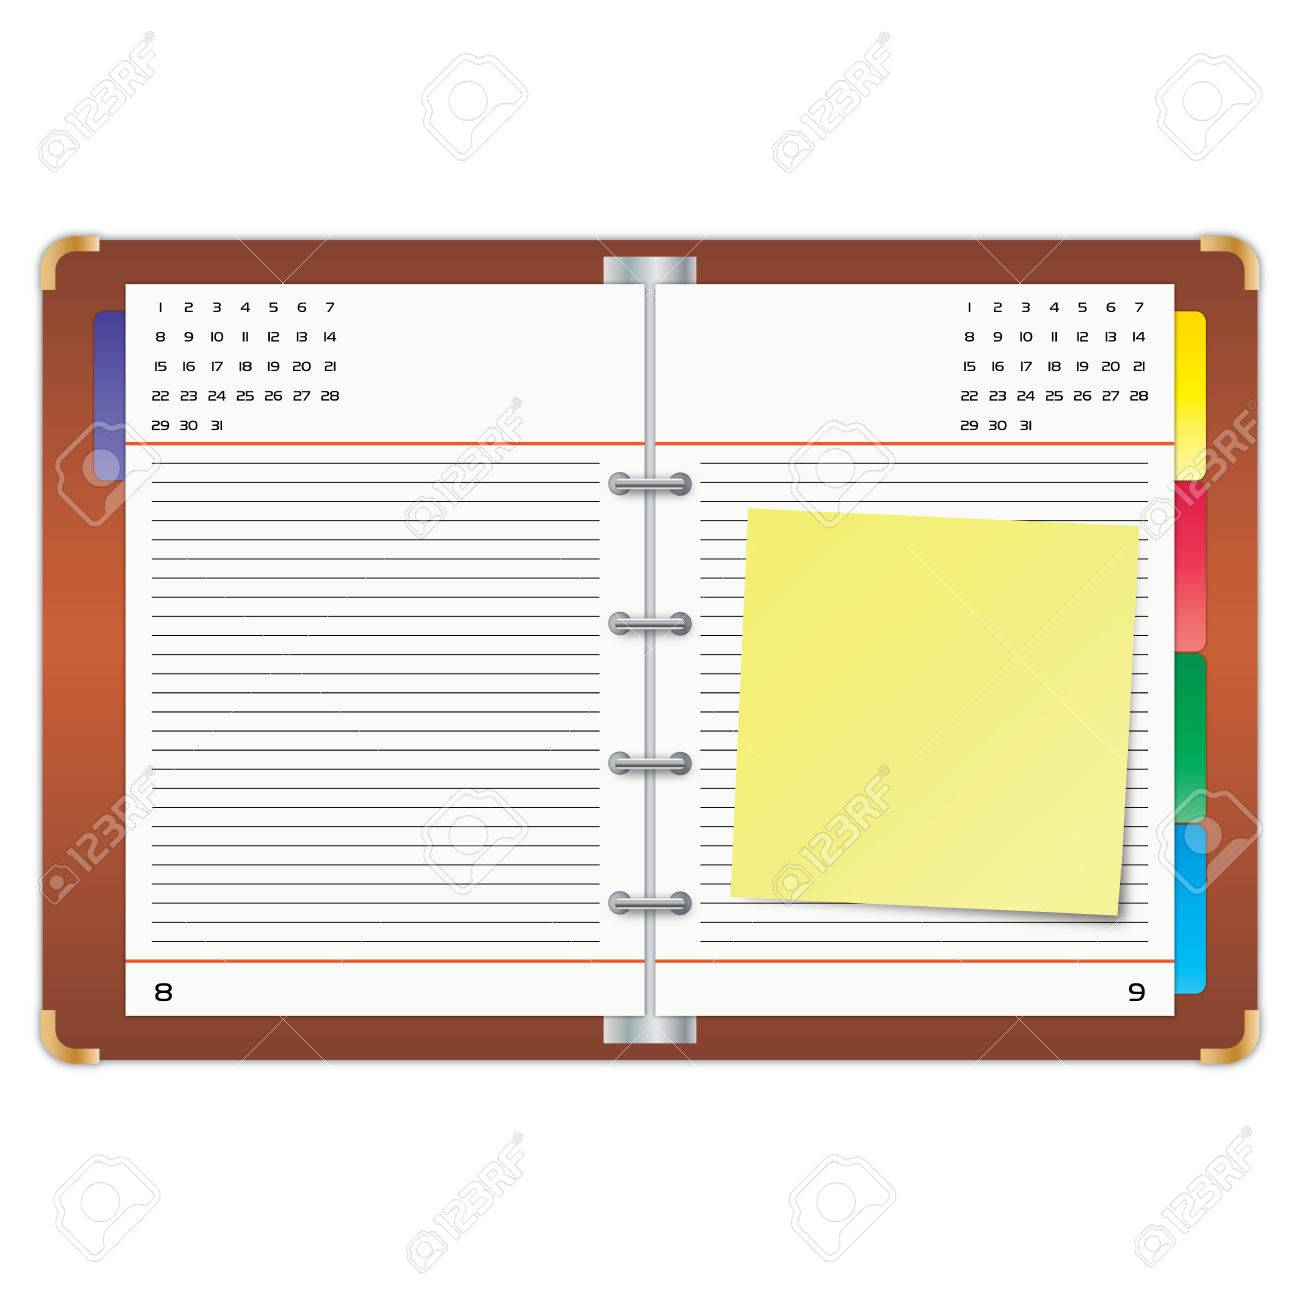 Organizer with the yellow sticky note. Stock Vector - 7633260